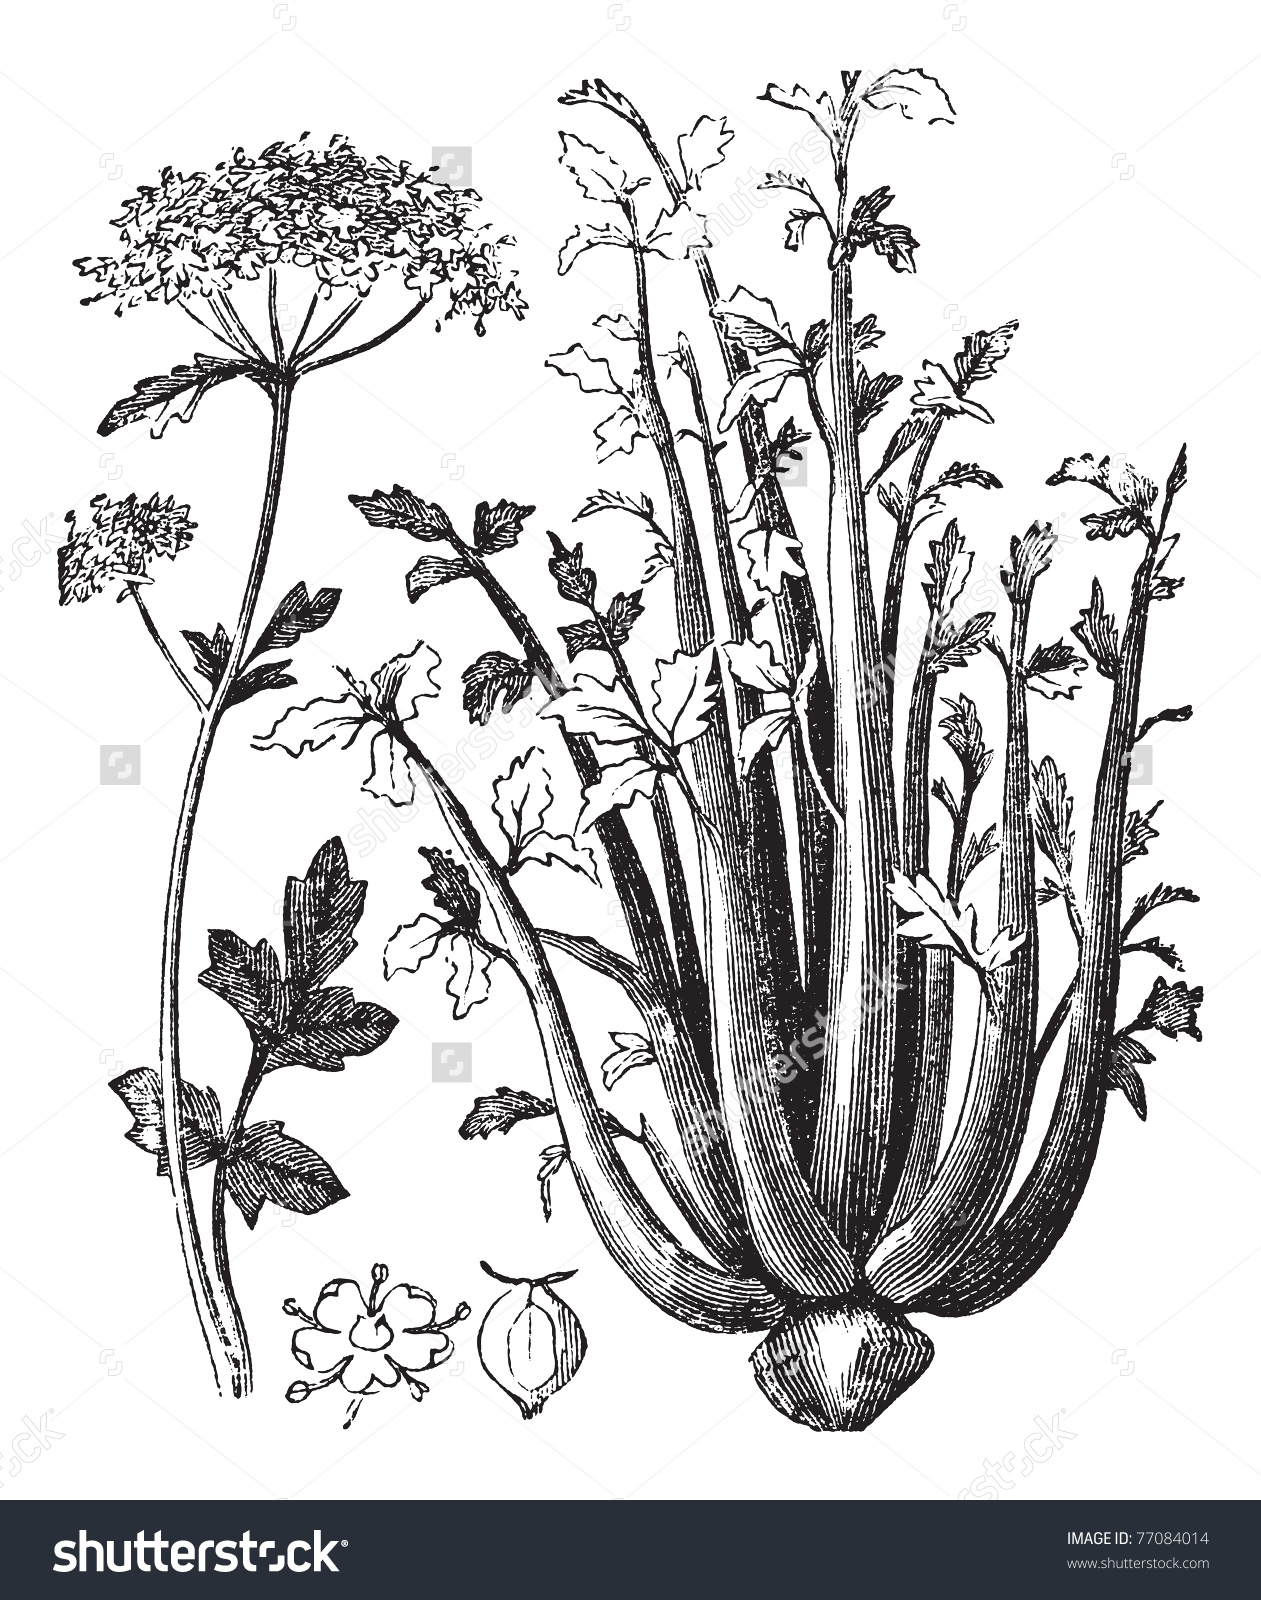 Celery Or Selinon Or Apium Graveolens Vintage Engraving. Old.